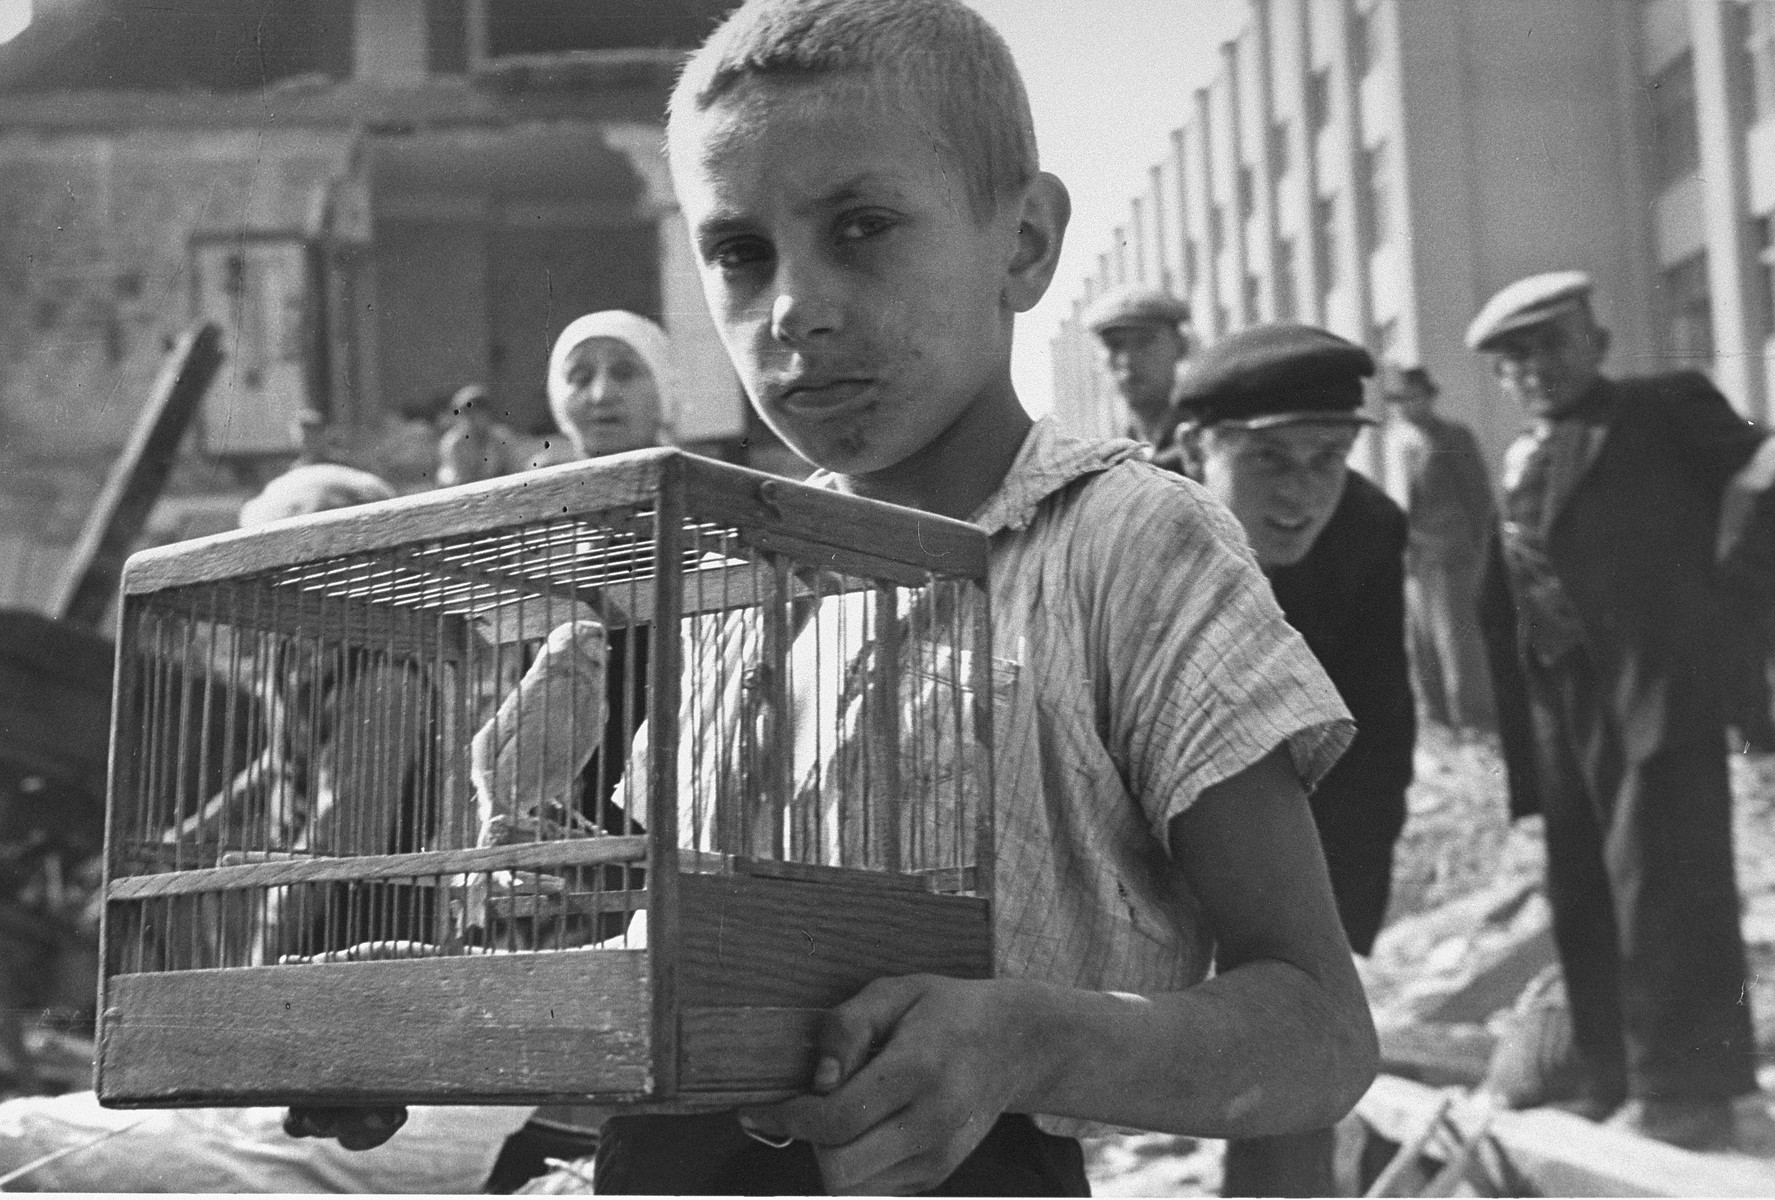 A young boy, Zygmunt Askienow, holds the cage containing his pet canary that he rescued from the ruins of his family's home in Warsaw.    Zygmunt survived the war.